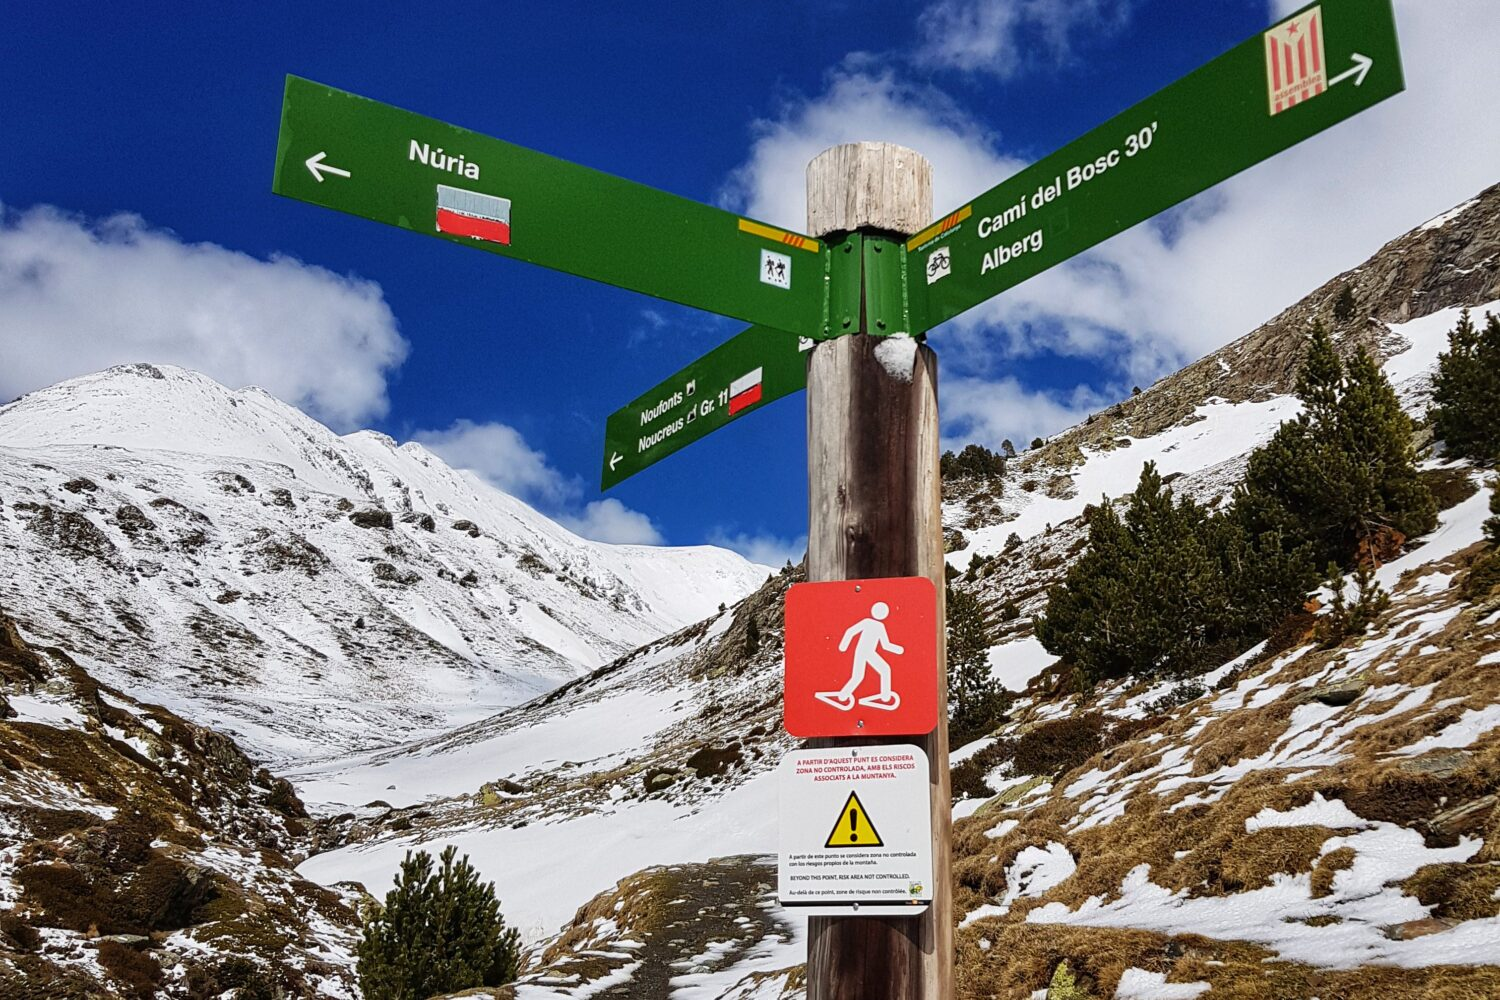 A signpost for hiking around Vall de Nuria